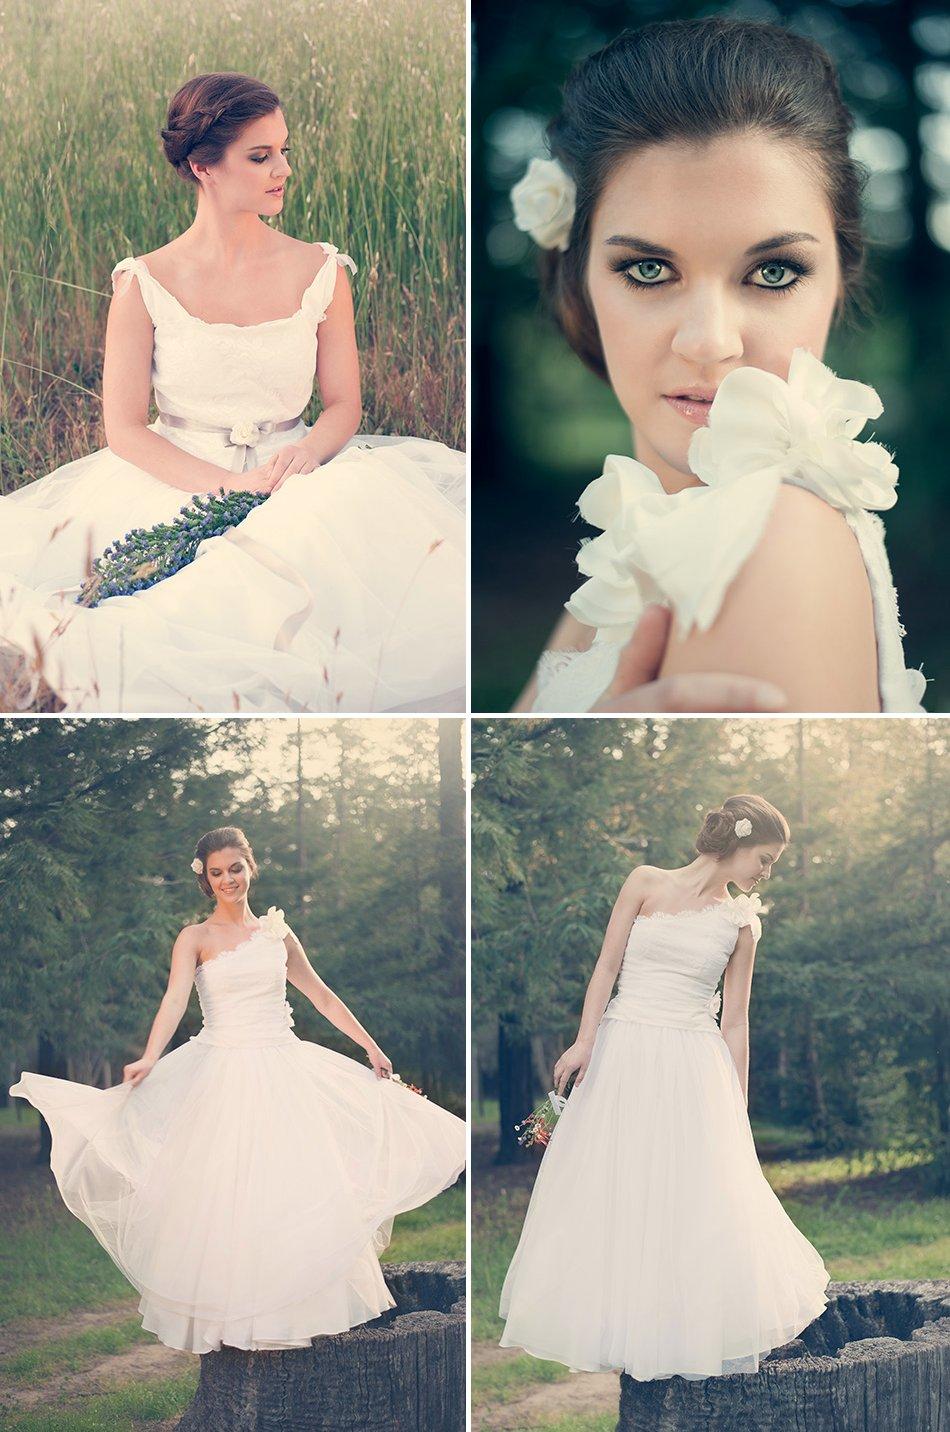 Romantic-wedding-inspiration-vintage-inspired-bridal-style-2.full